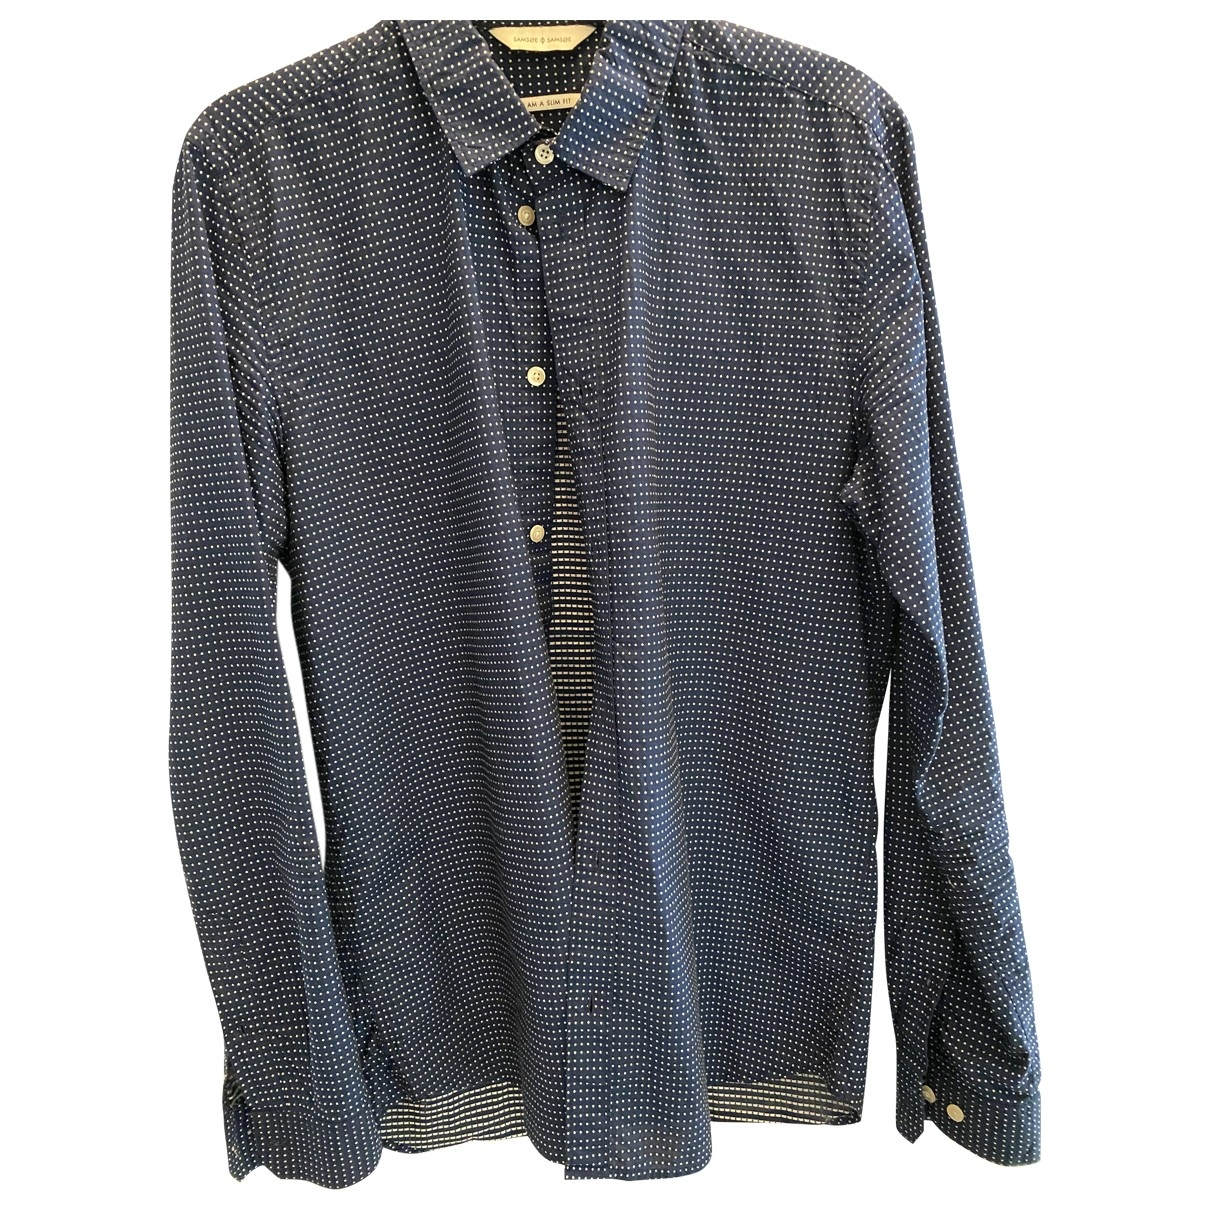 Samsoe & Samsoe \N Blue Cotton Shirts for Men M International